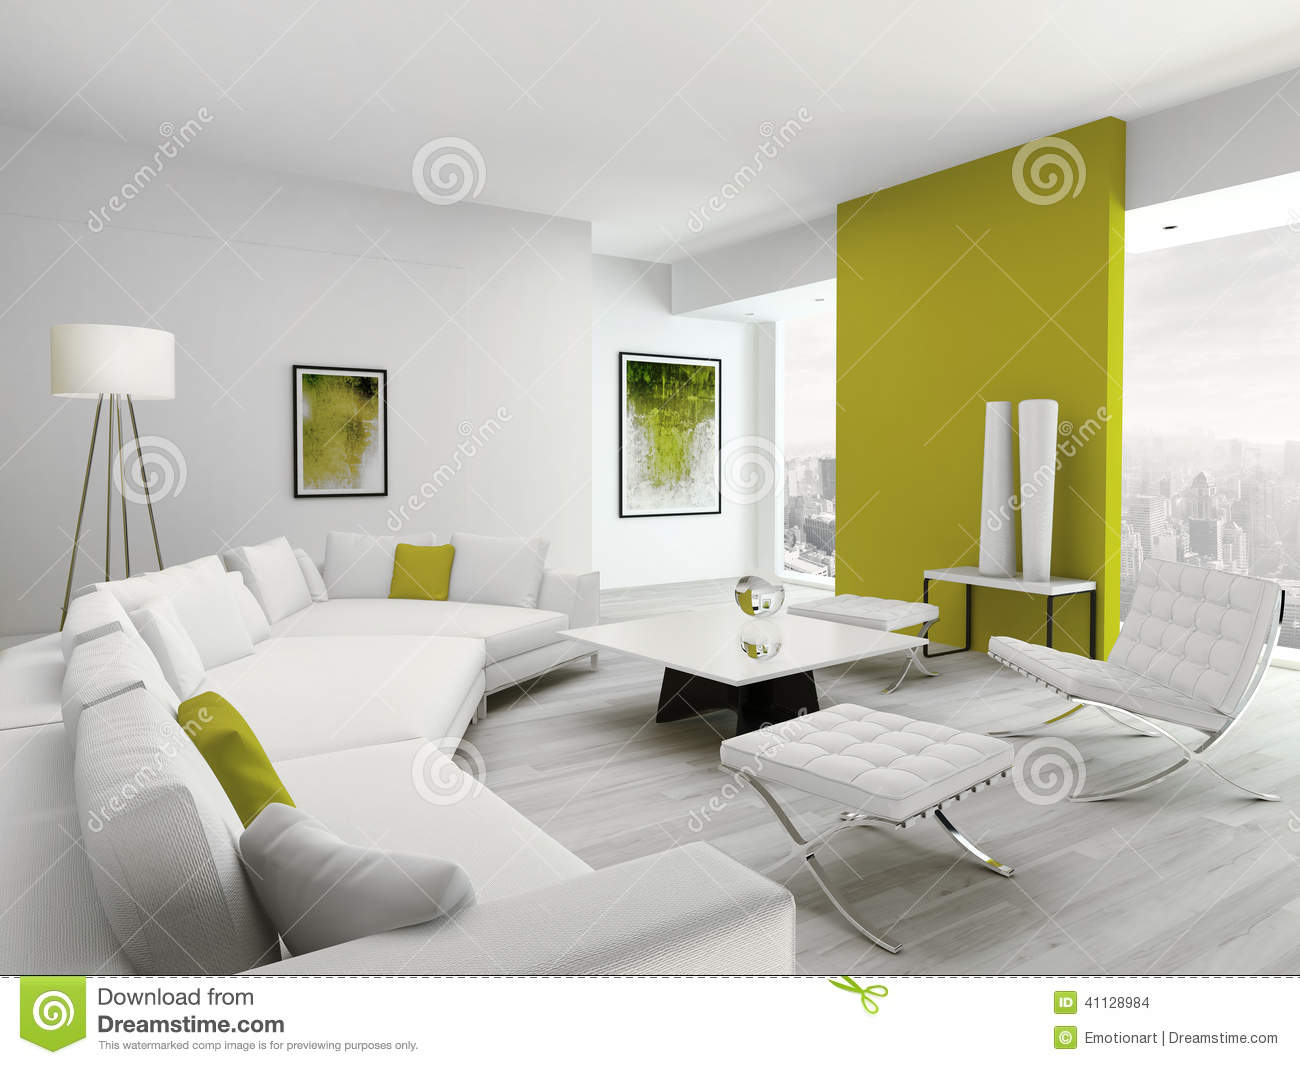 Salon vert et par blanc color moderne int rieur for Salon moderne blanc